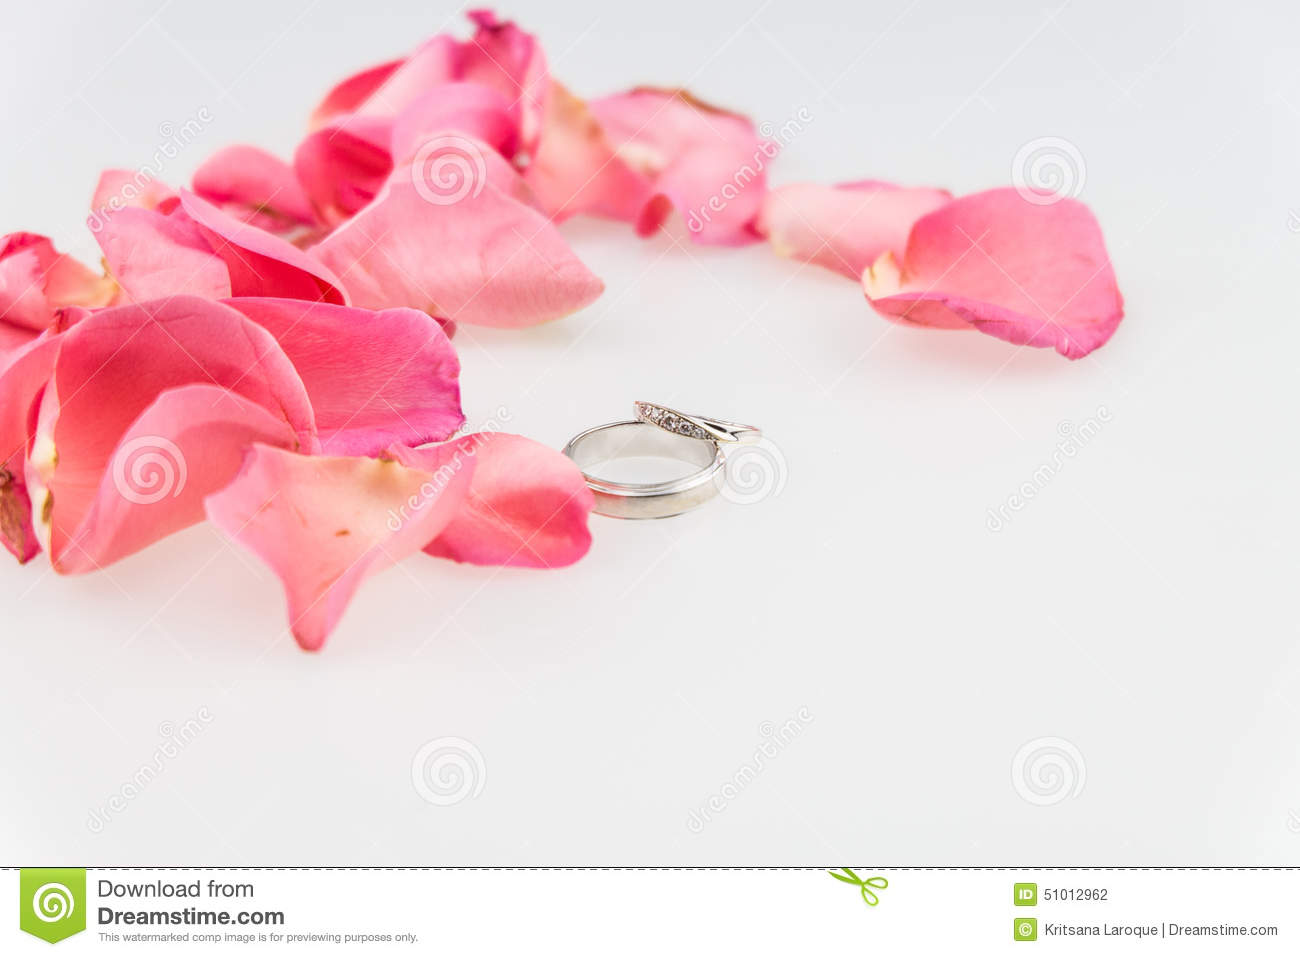 Wedding Ring With Pink Rose Petal On White Background Stock Photo